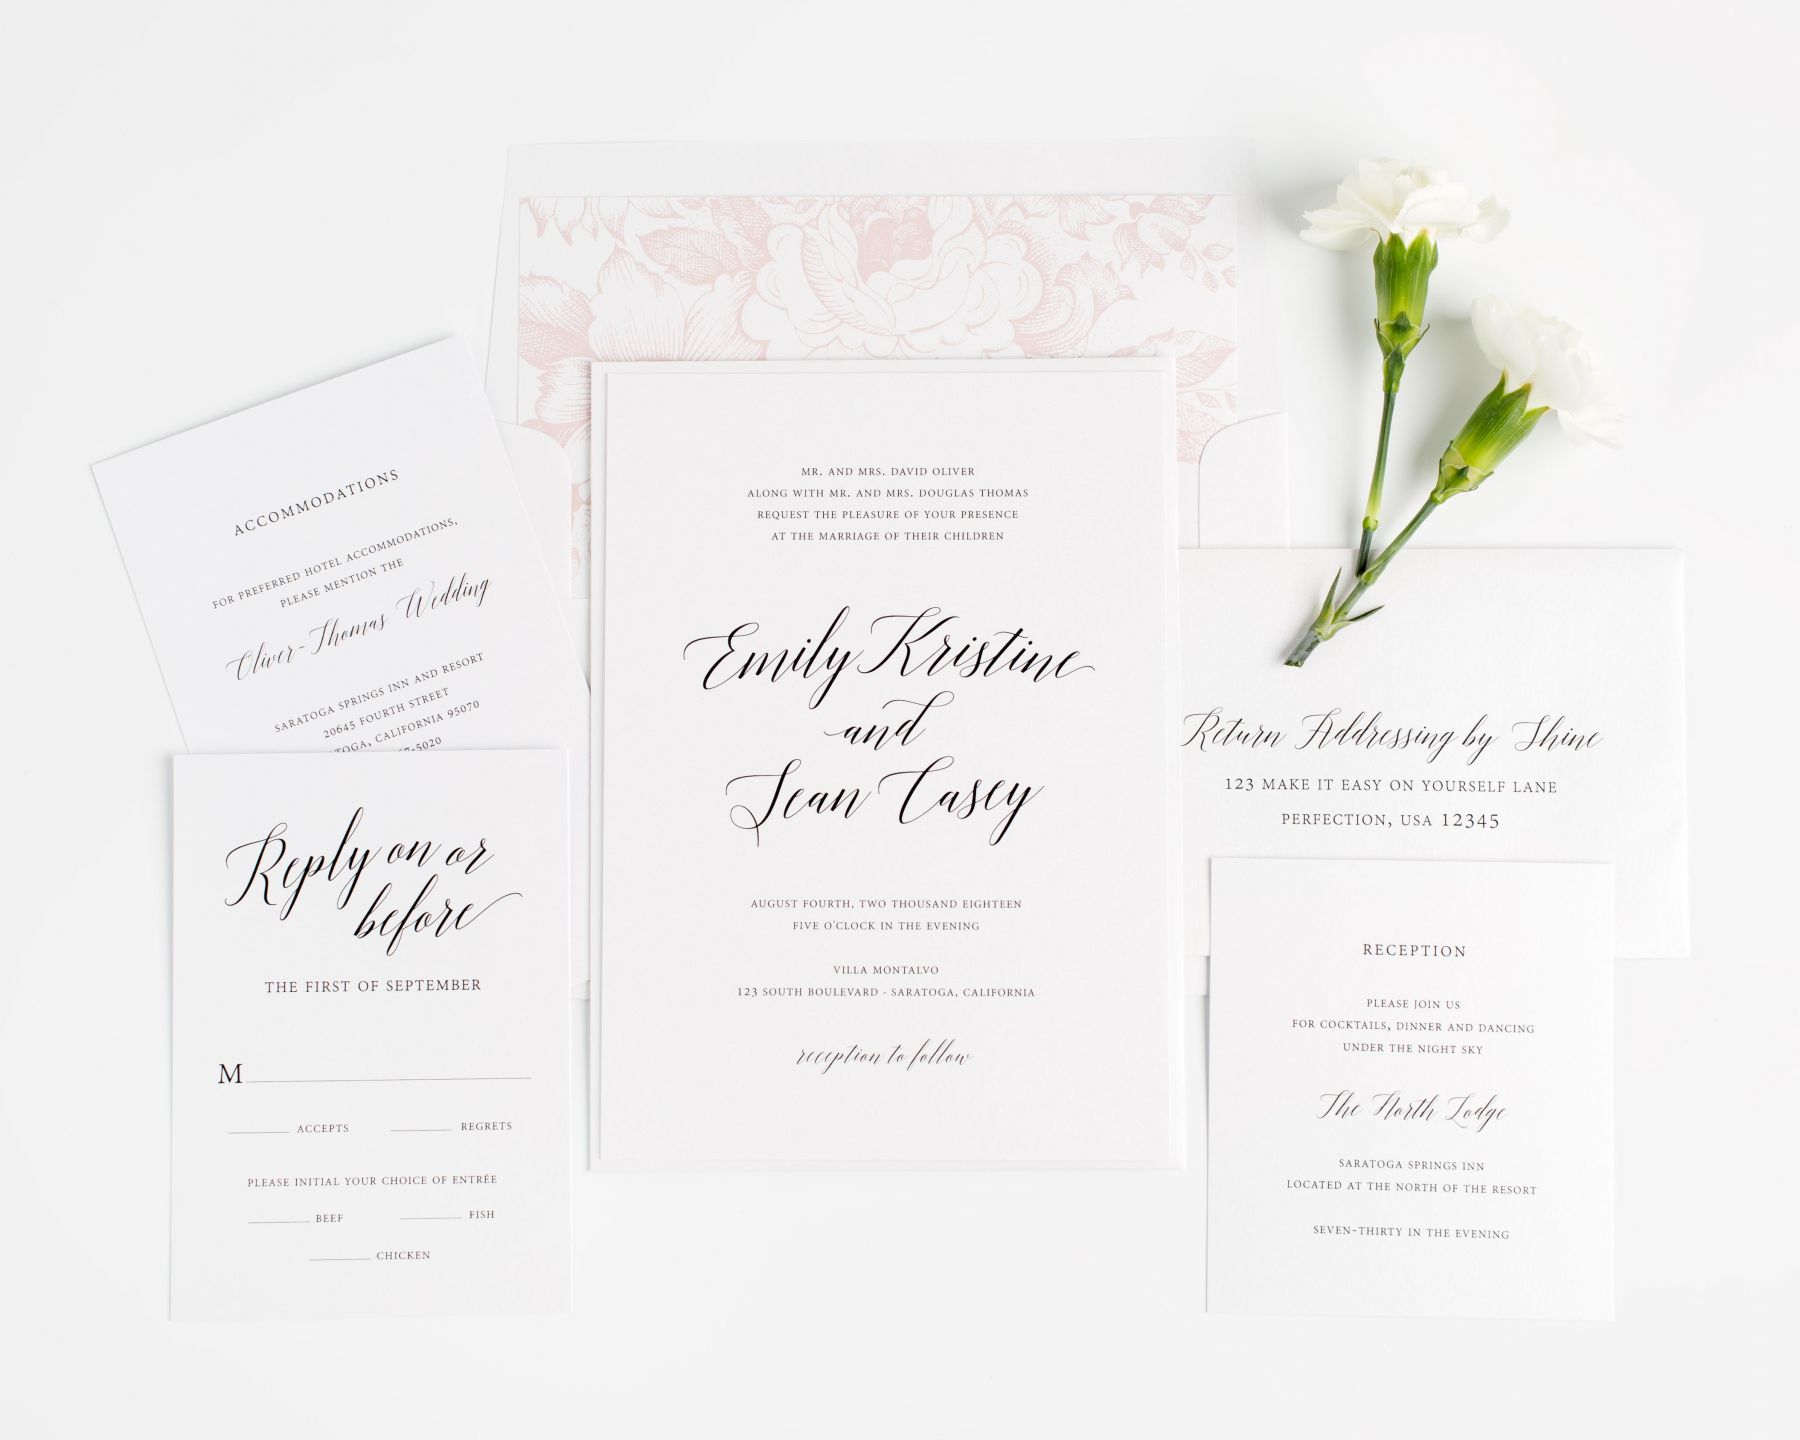 Garden Romance Wedding Invitations in blush pink